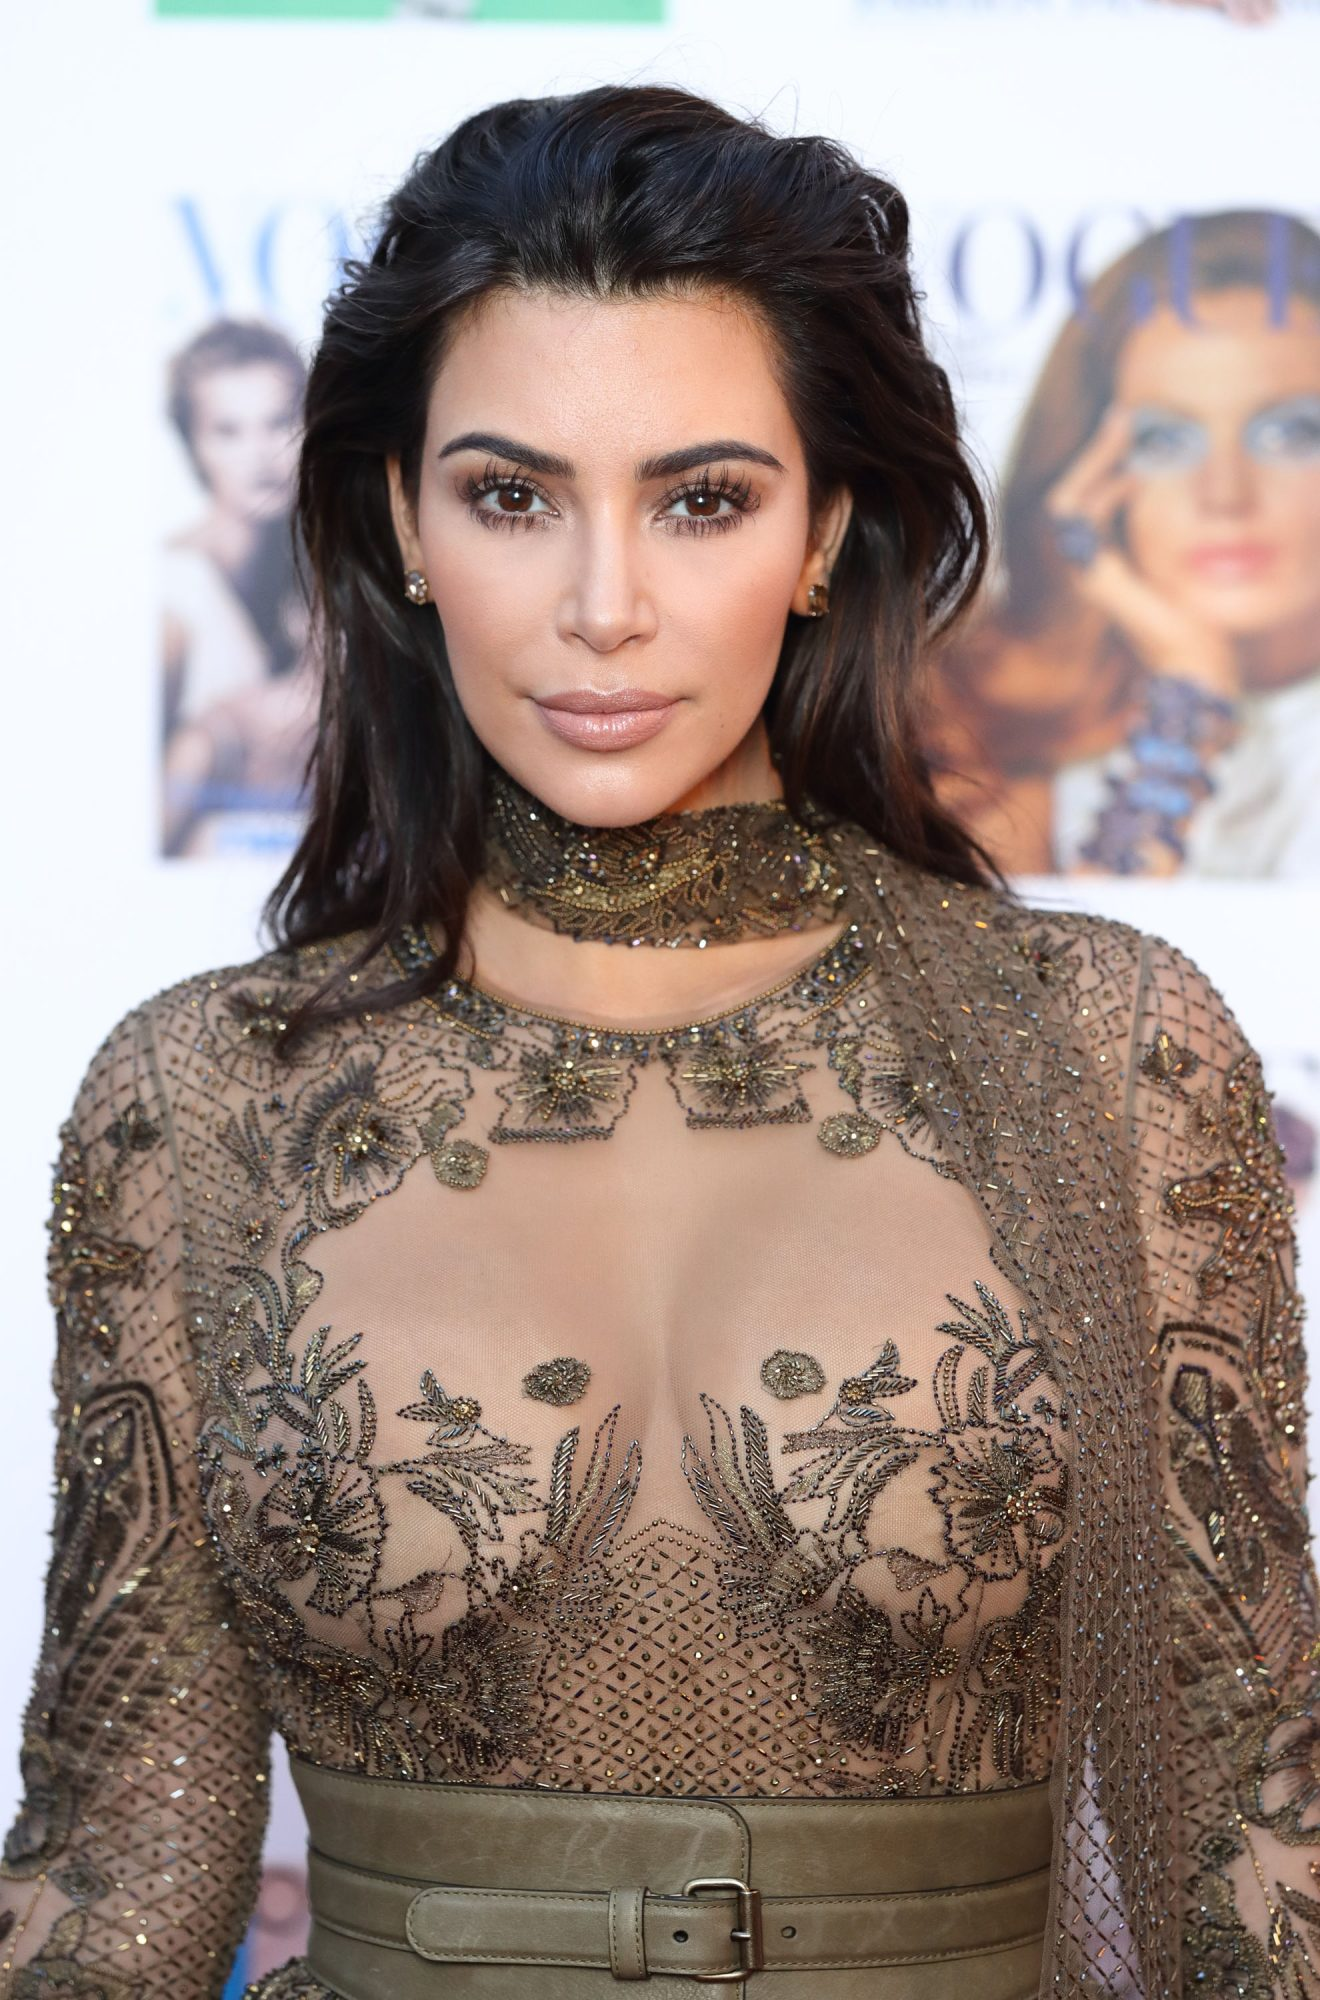 Kim Kardashian West Ready to Go Under the Knife to Get Pregnant — Even Though Childbirth Could End Her Life